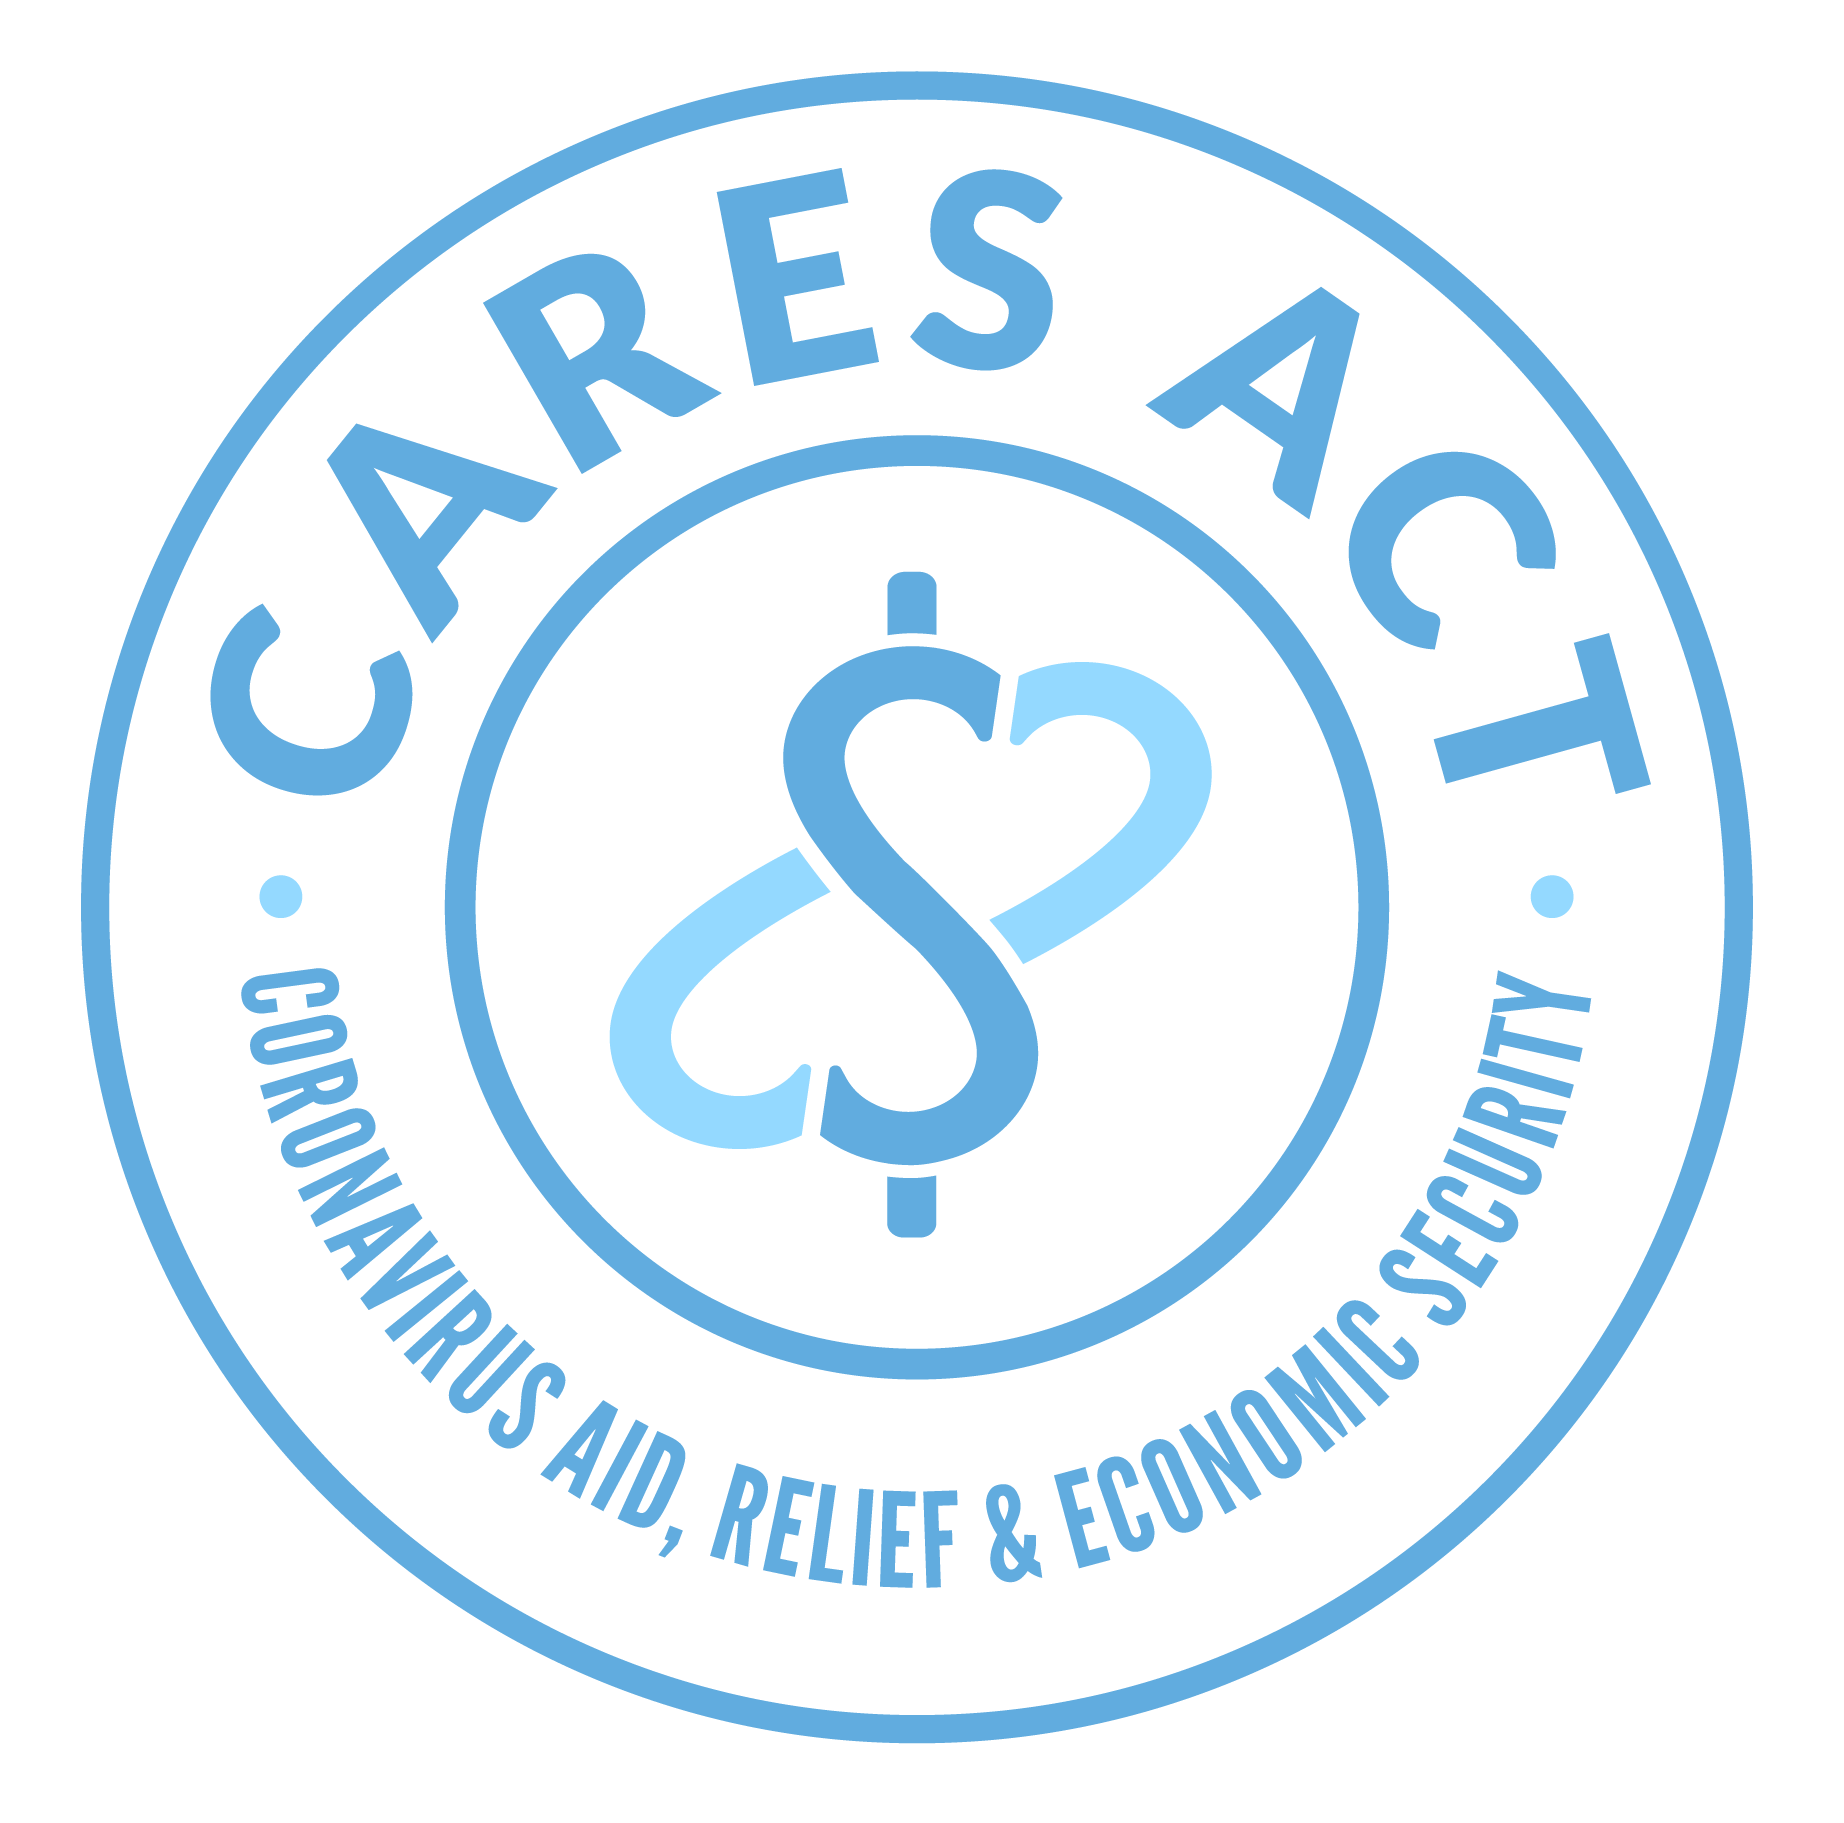 CARES Act Badge